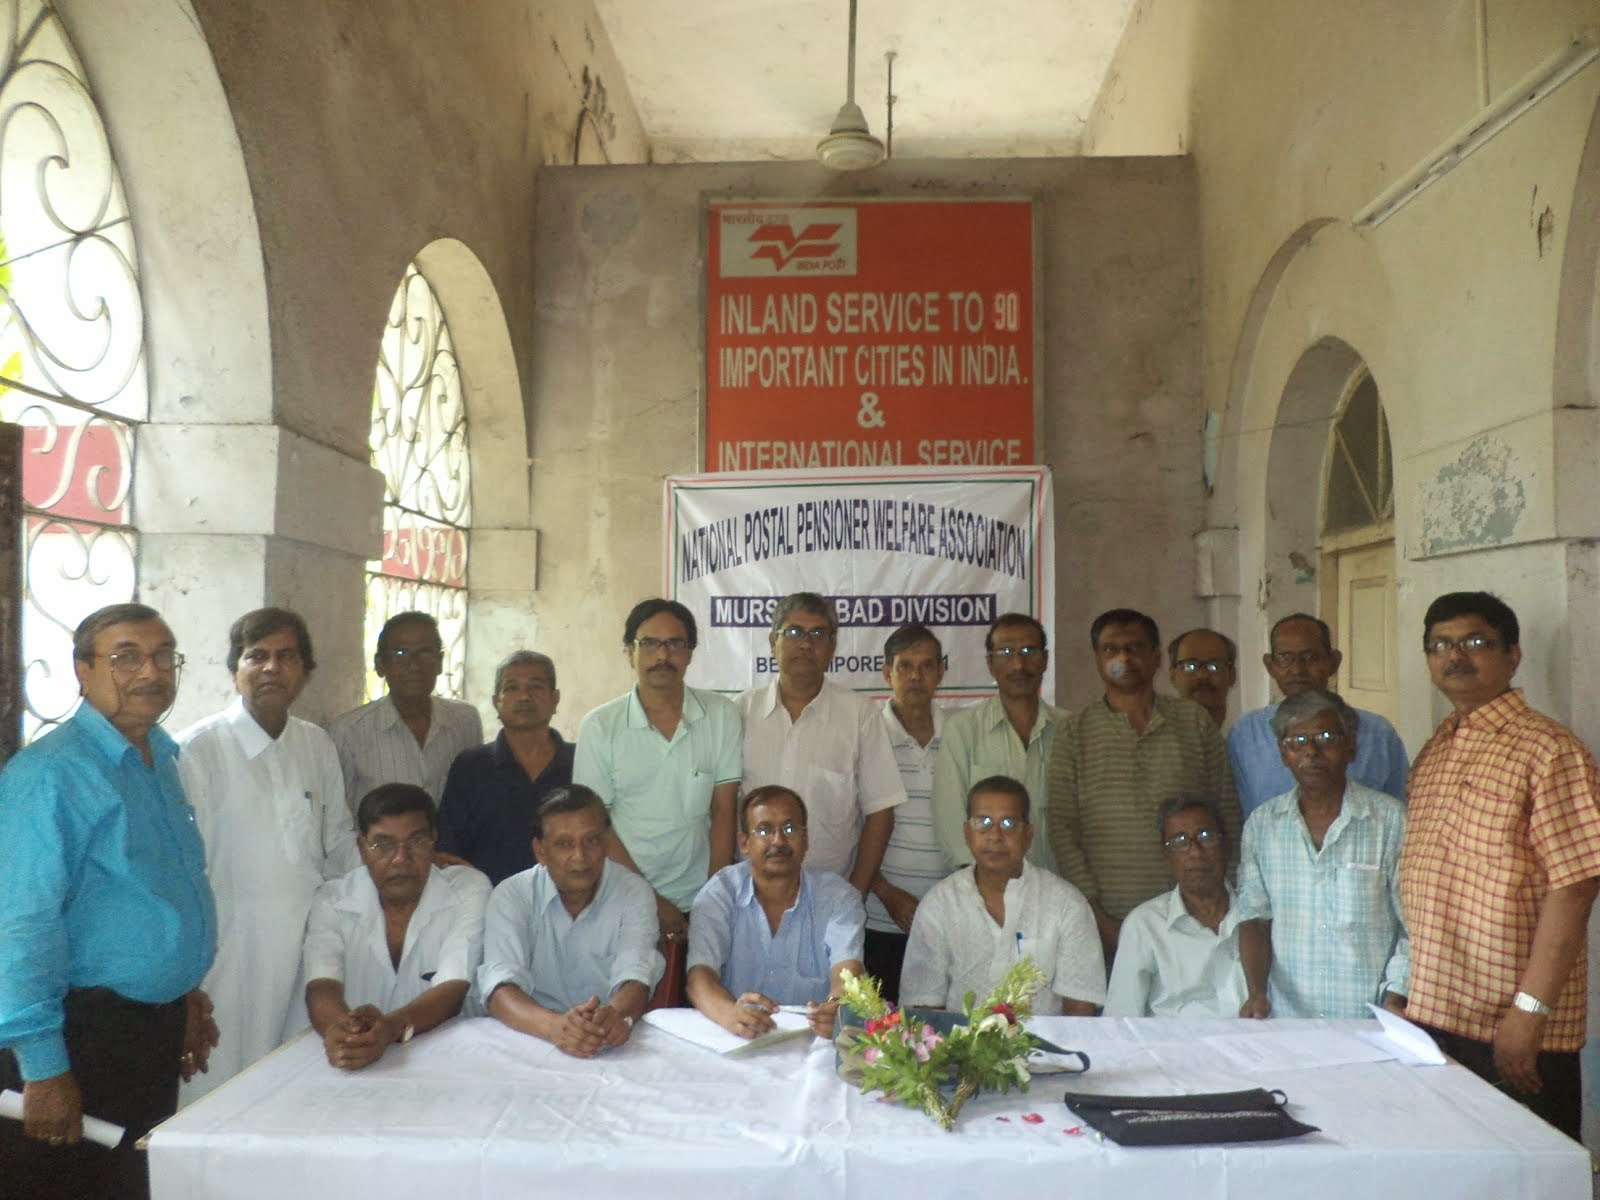 FORMATION OF PENSIONER ASSOCIATION AT BERHAMPORE